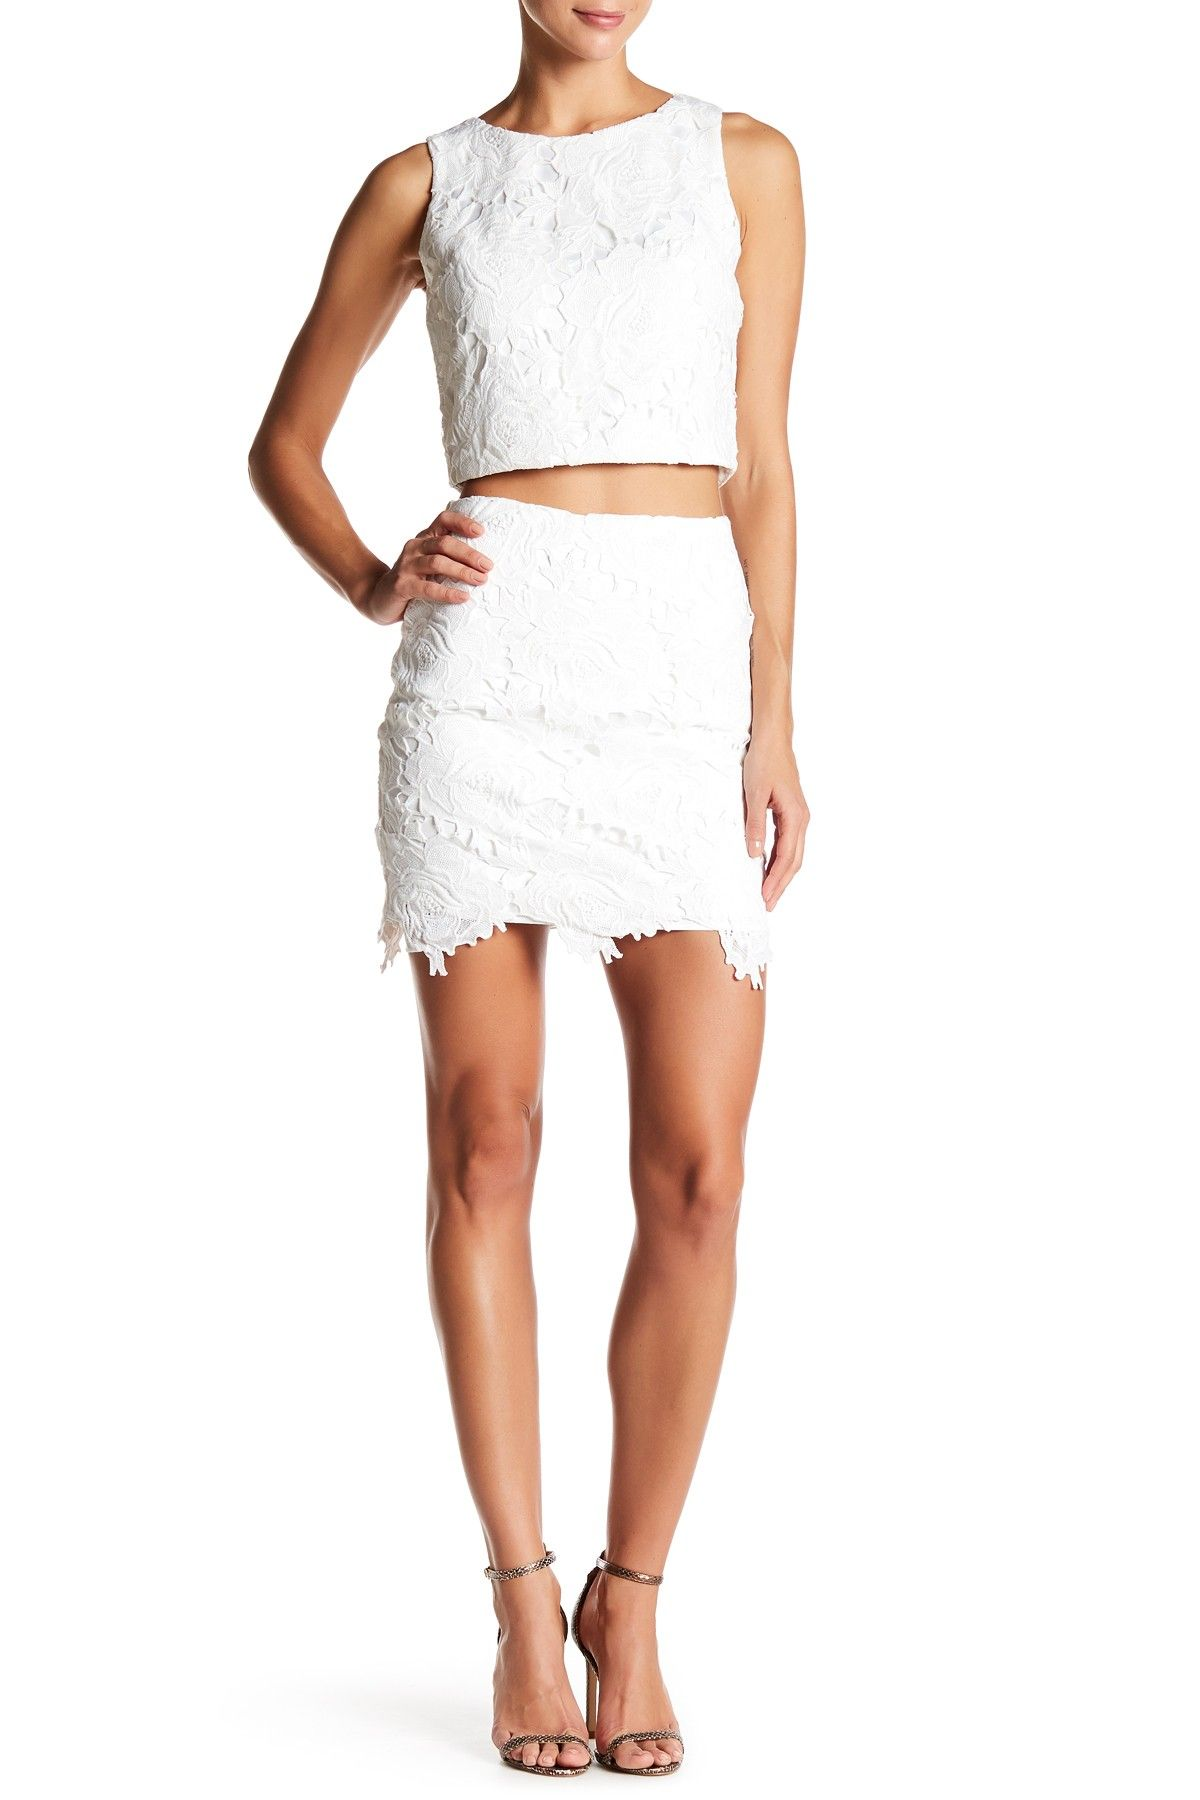 Lace Crop Top and Skirt Set | Sara Boo